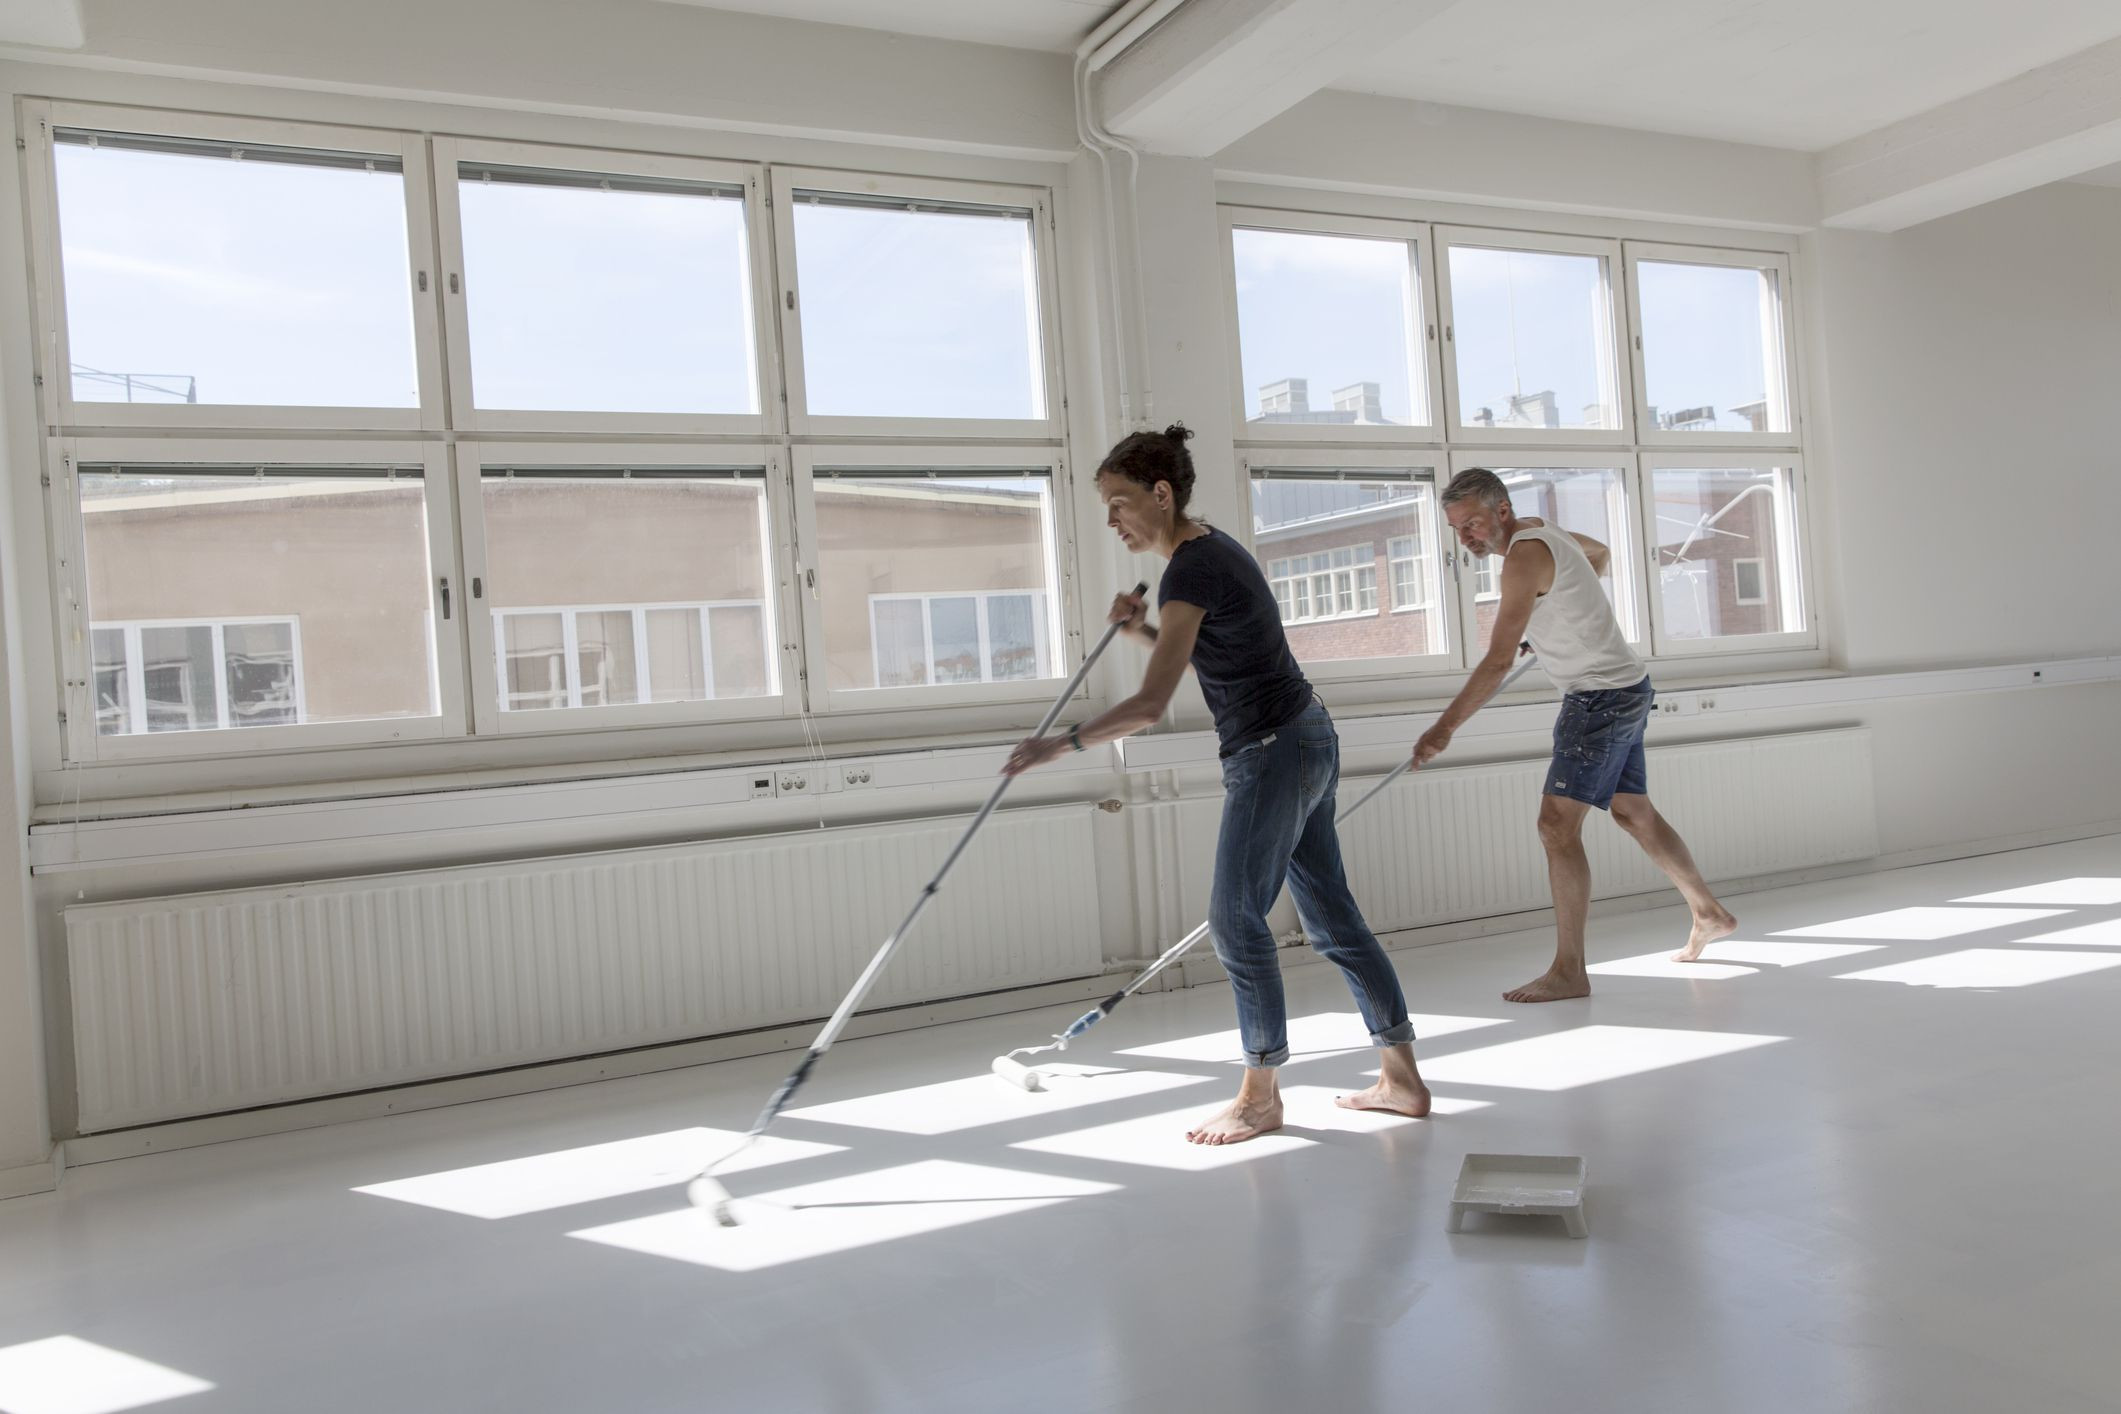 Painted Hardwood Floors Pinterest Of How to Paint A Plywood Floor with Regard to Paintingplywoodfloor Gettyimages 696143855 59f9481c685fbe001109a805